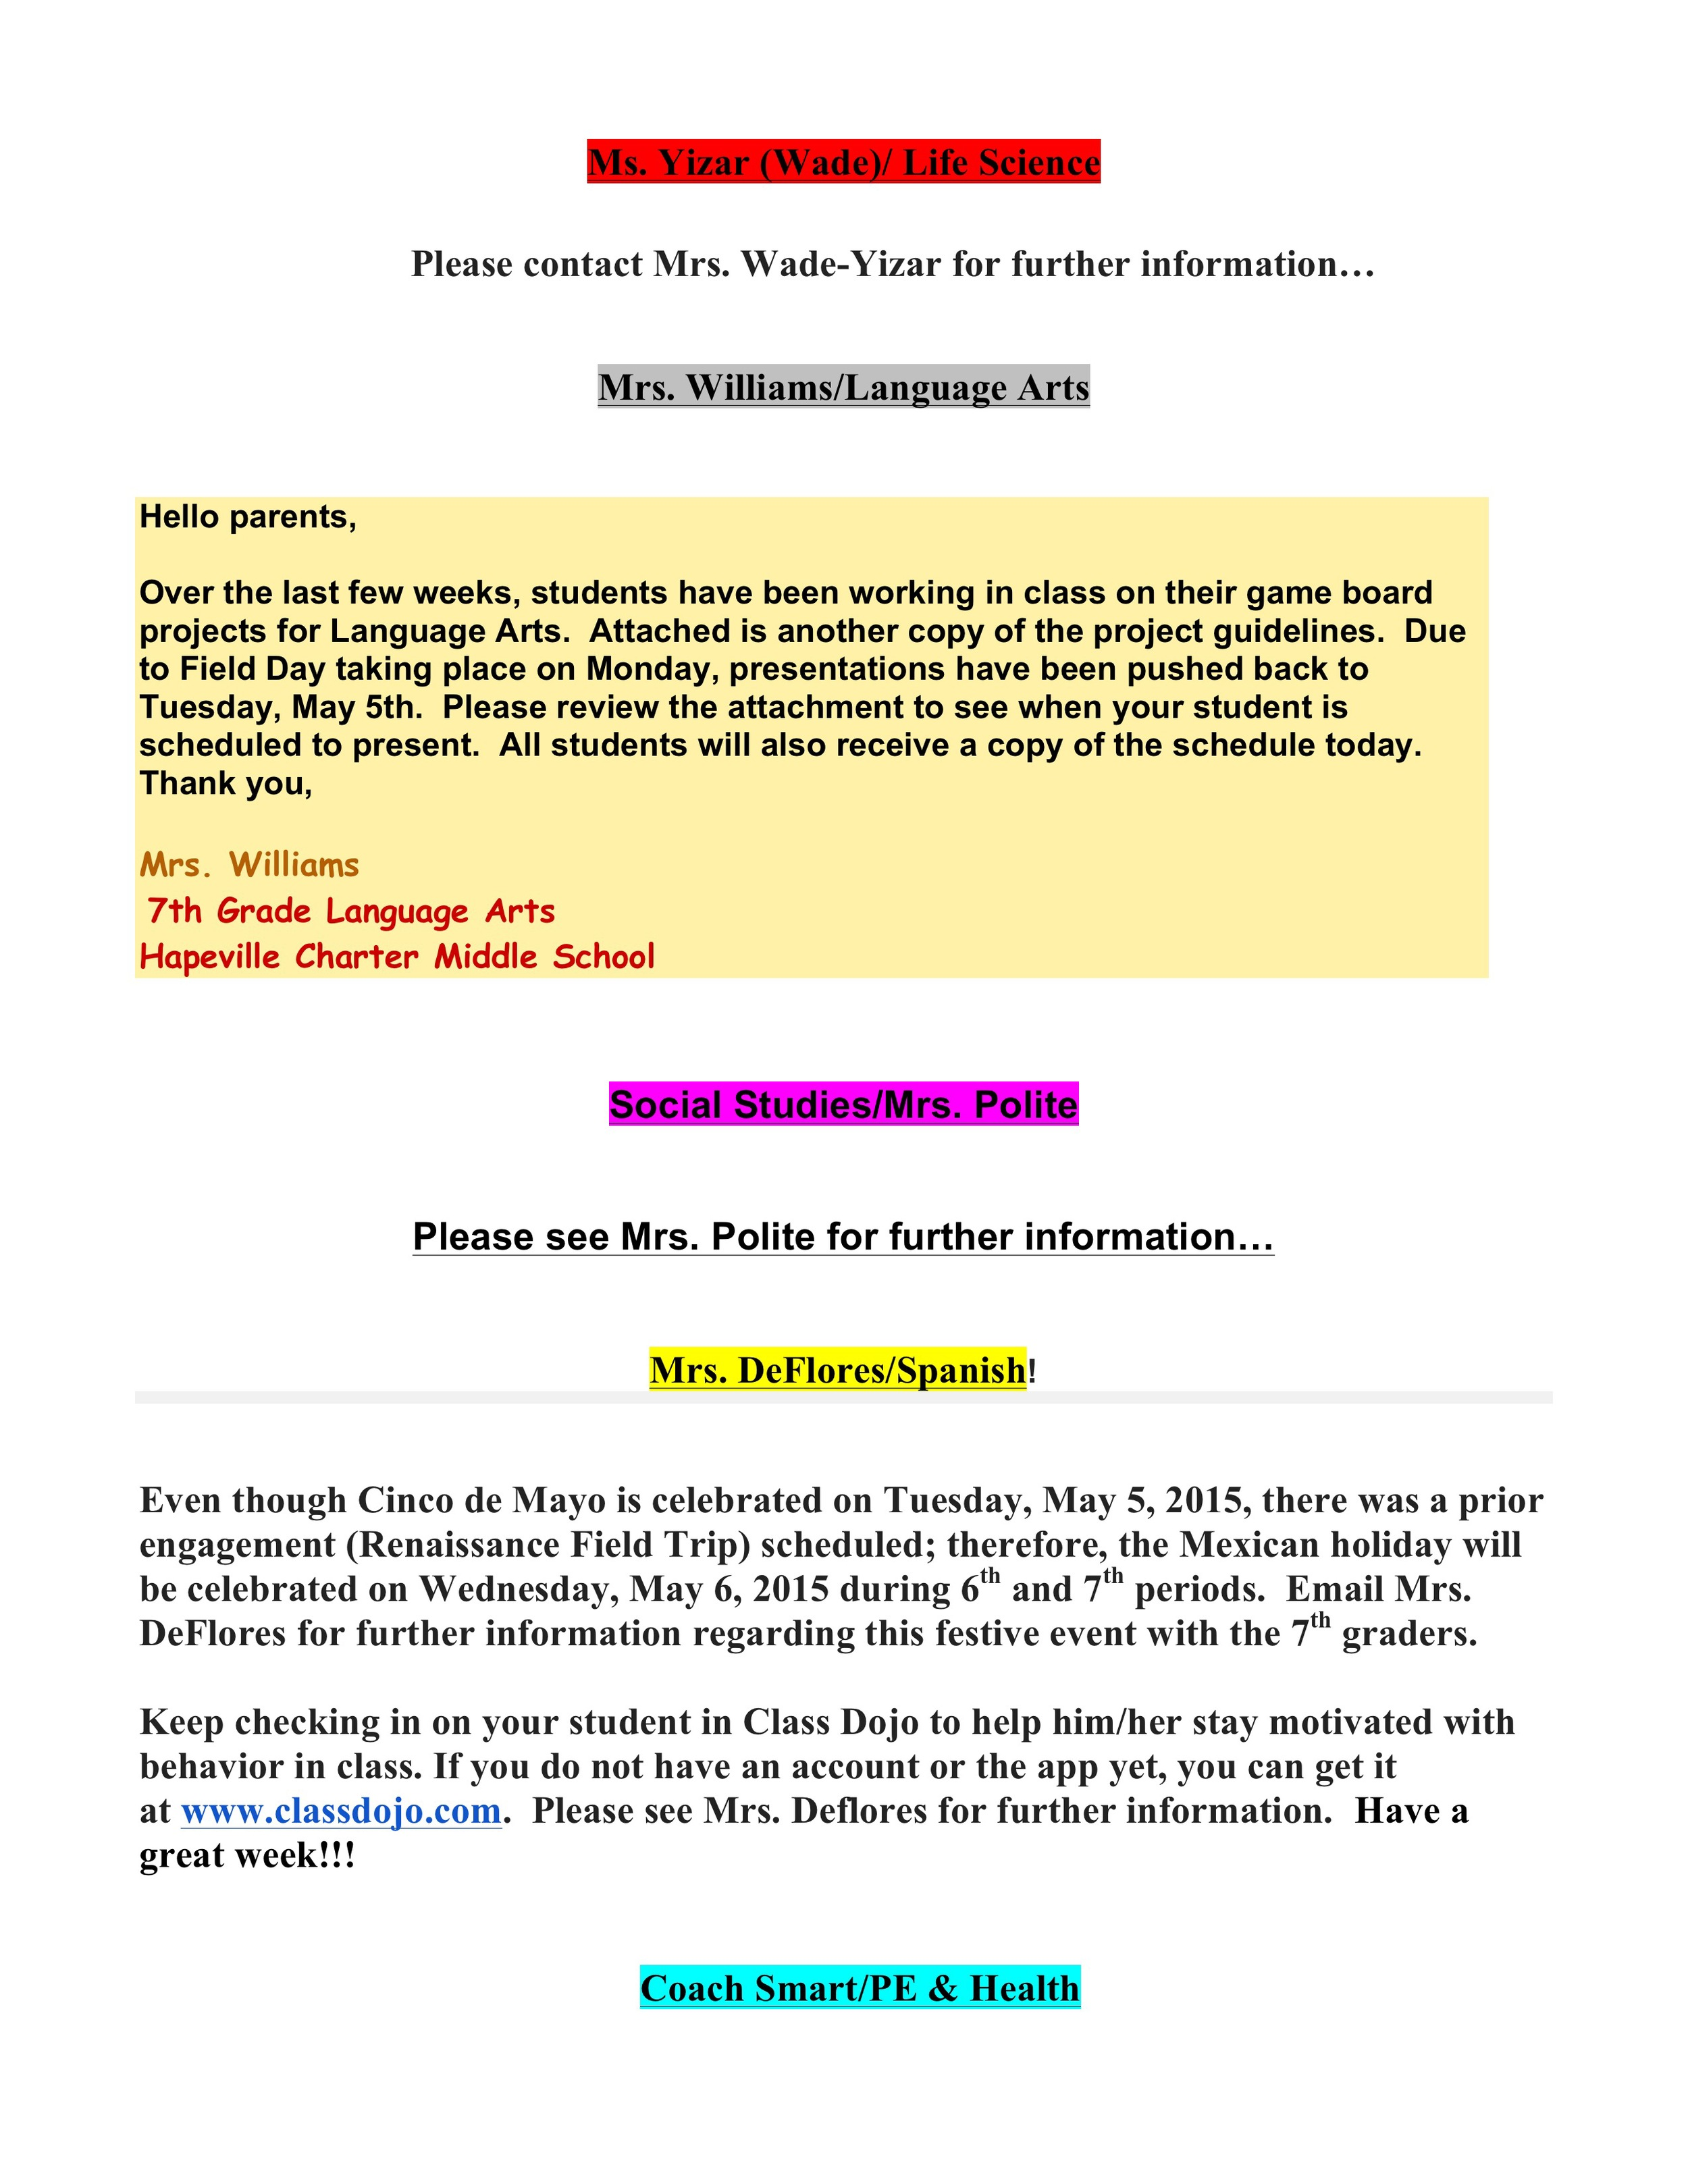 Newsletter Image1...Newsletter for the week of May 4-8, 2015 3.jpeg